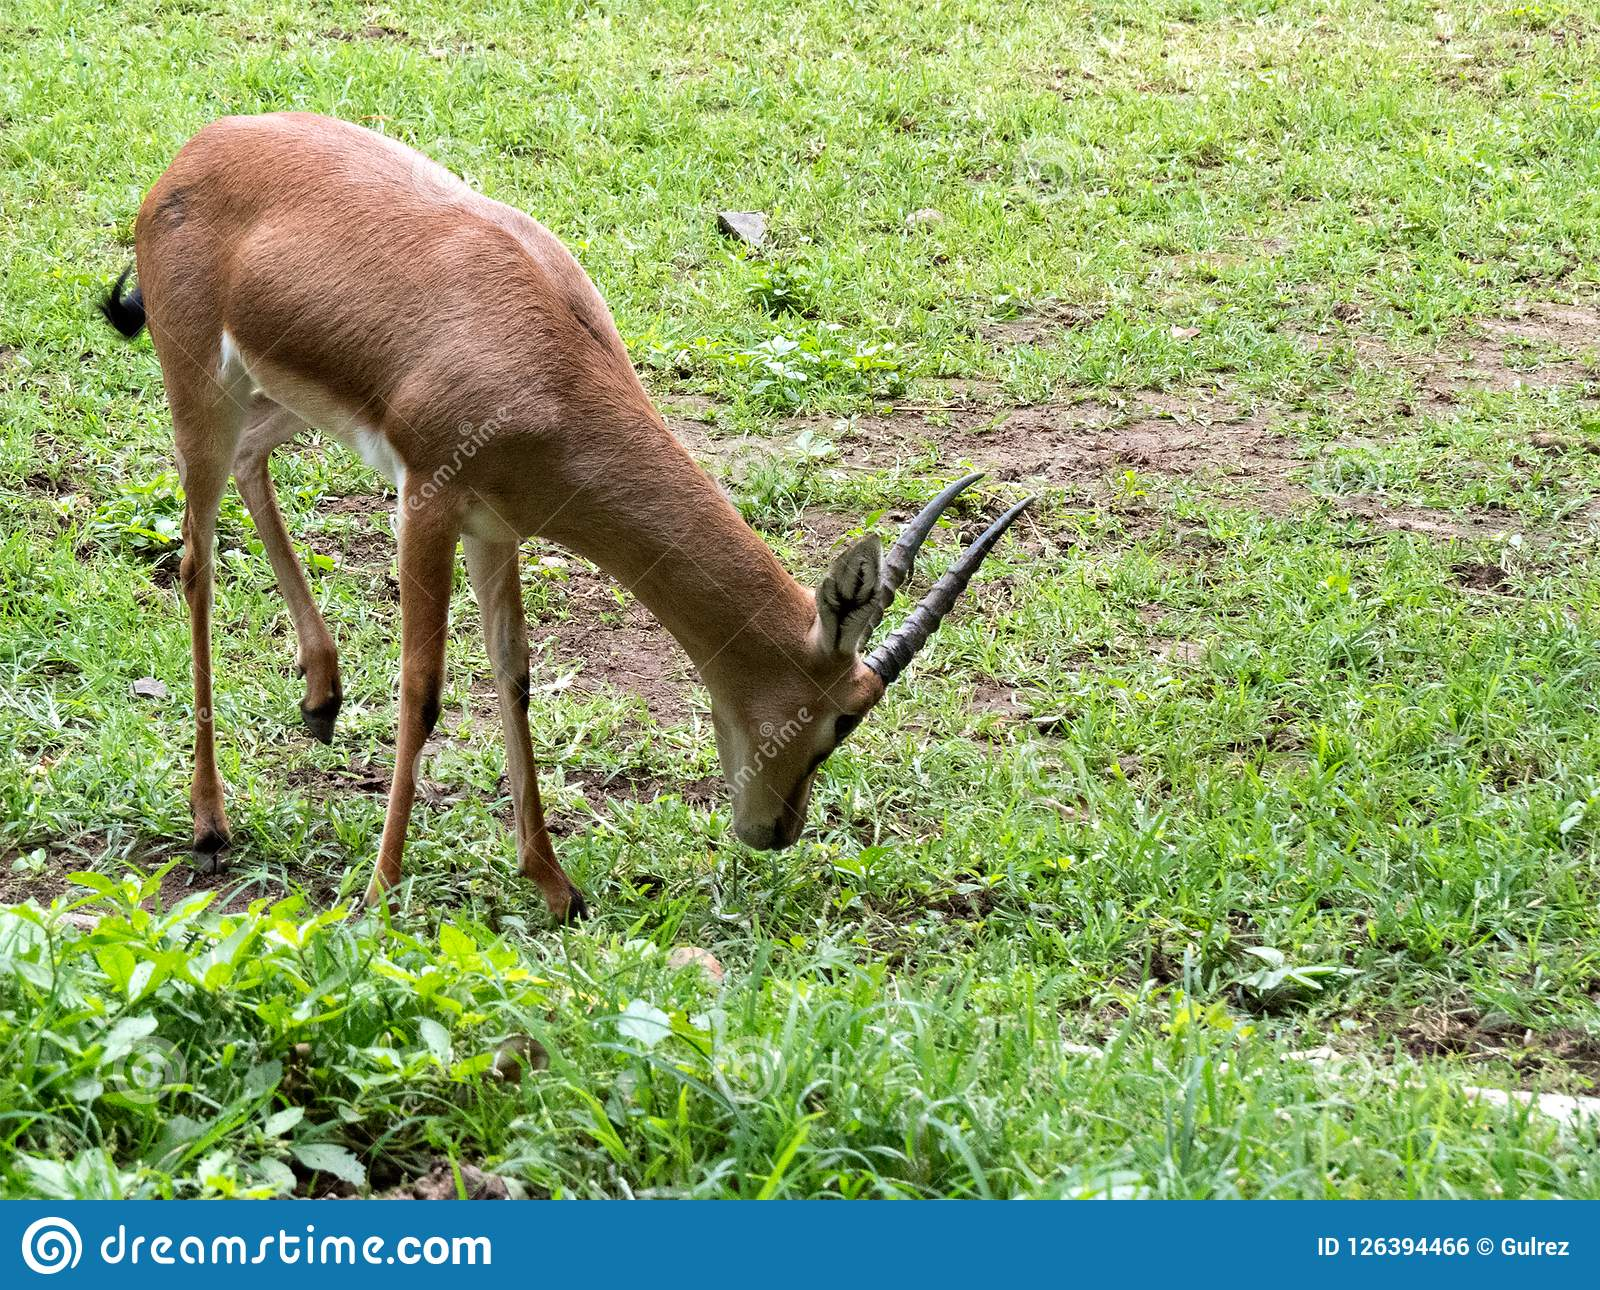 Indian Gazelle Or Chinkara Eating Grass Stock Photo - Image of